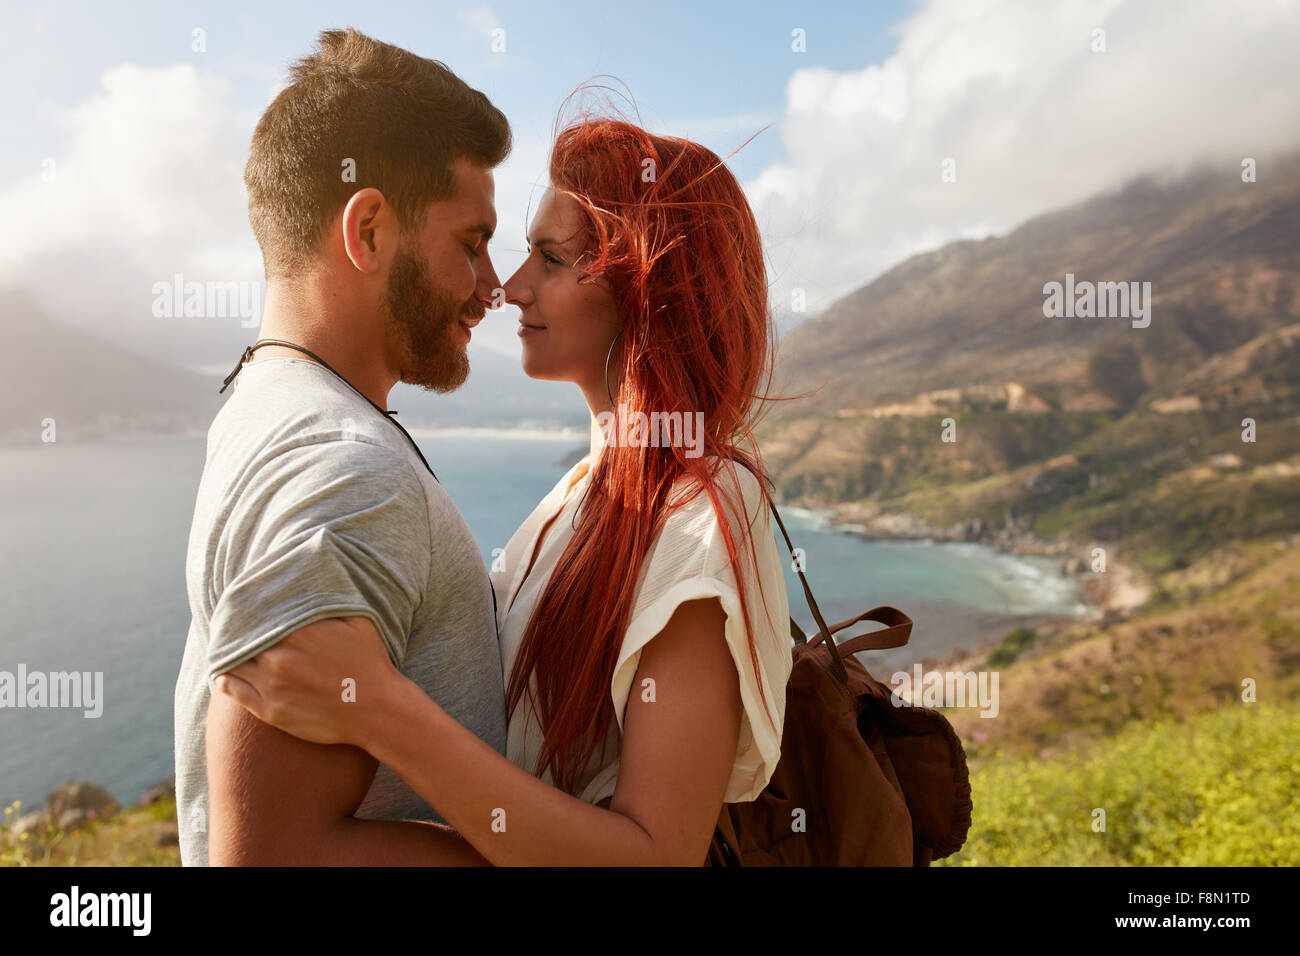 Portrait of young man and woman standing face to face. Affectionate young couple enjoying their love in nature outdoors. - Stock Image